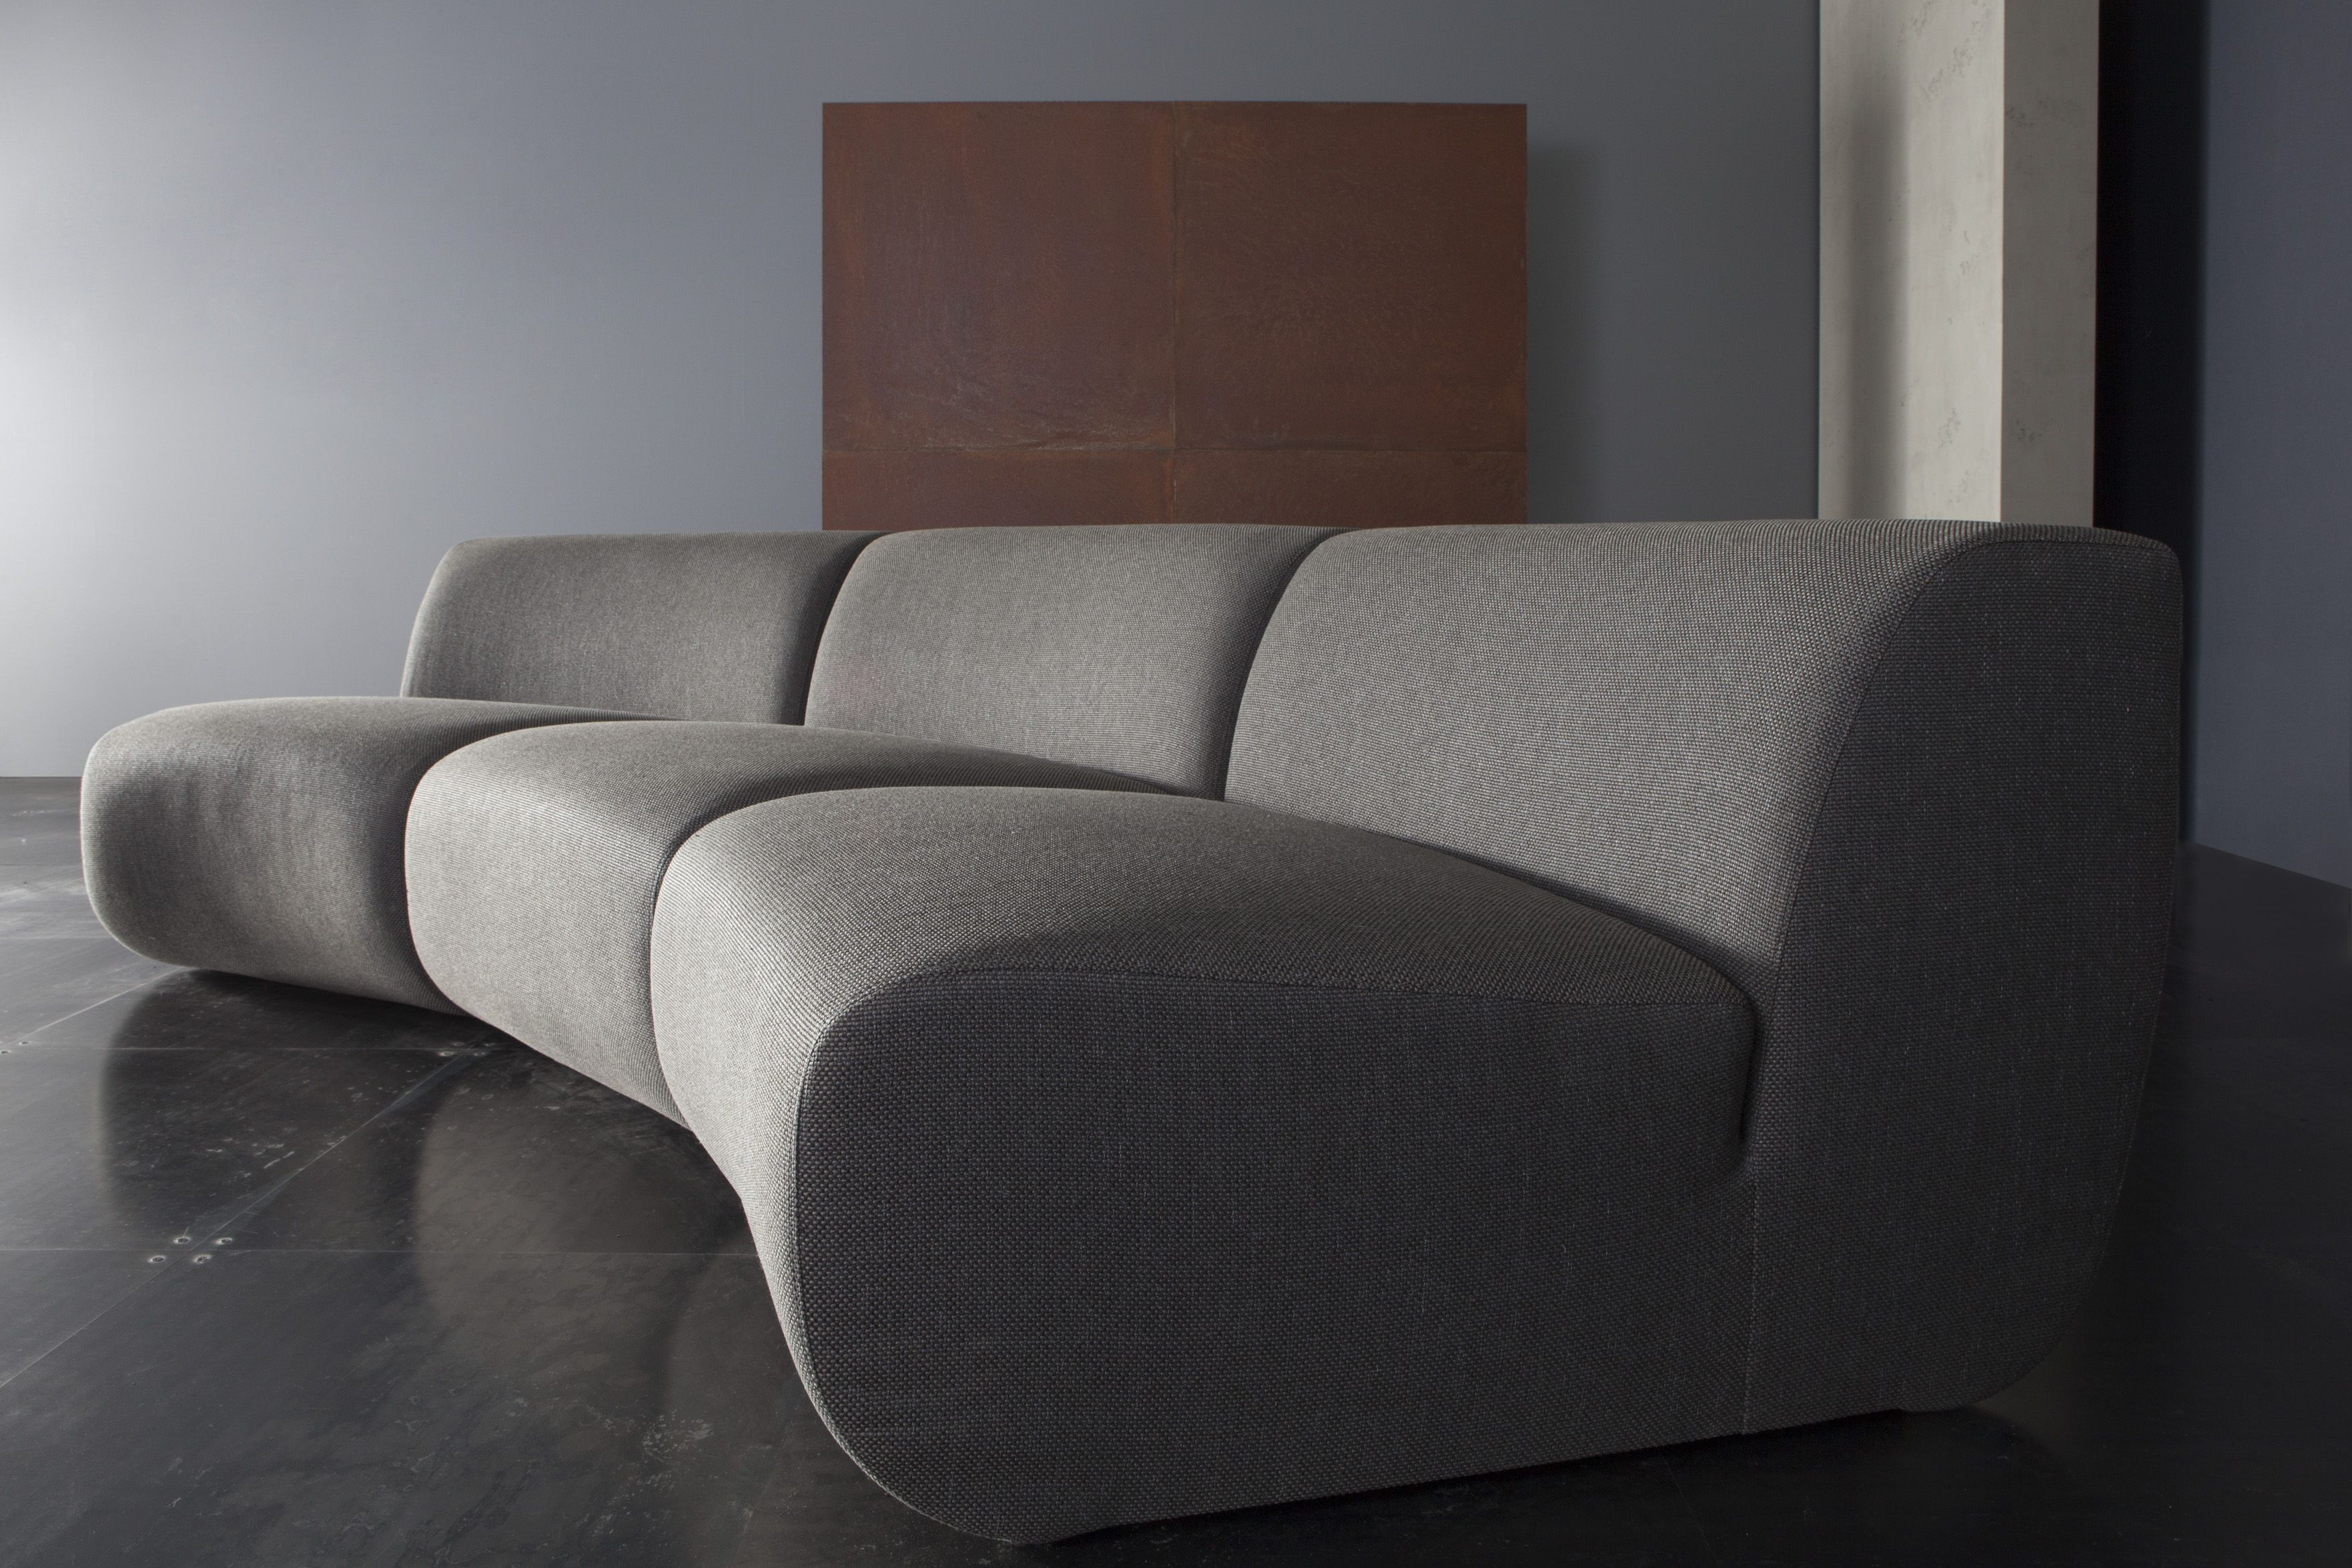 meijers furniture. Sofa Curve; Remy Meijers Collection Furniture